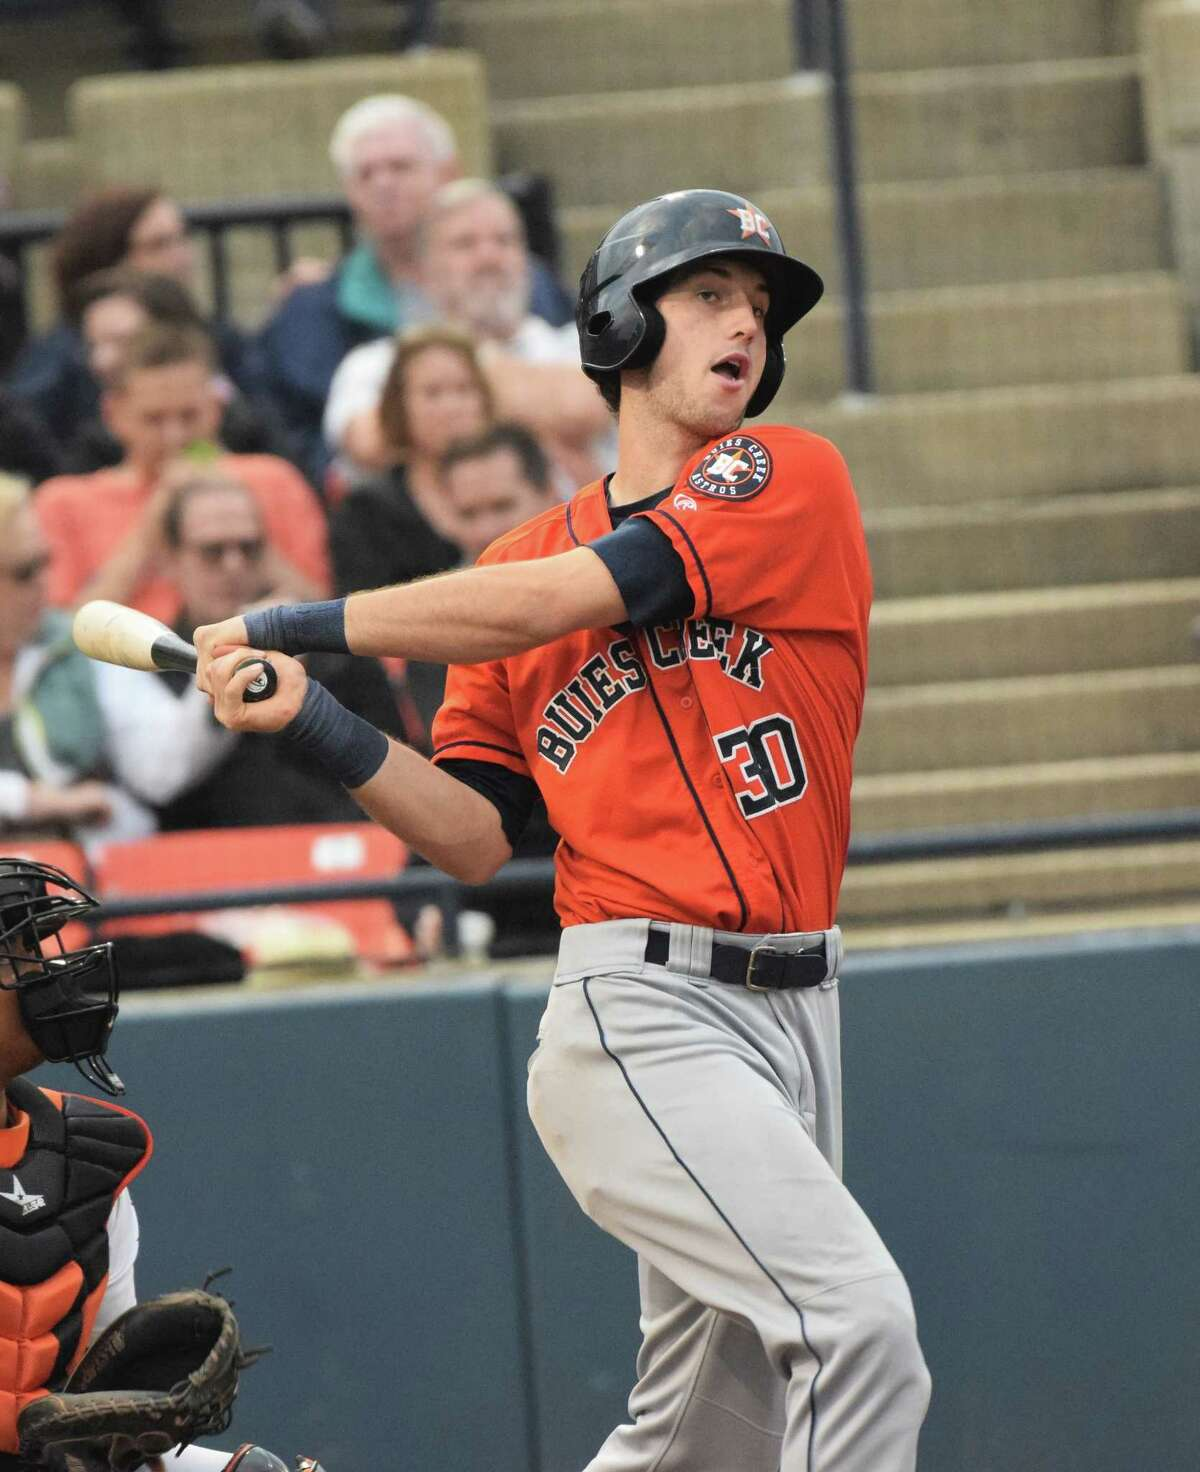 Astros prospect Kyle Tucker in a 2017 game with the Buies Creek Astros of the Carolina League.